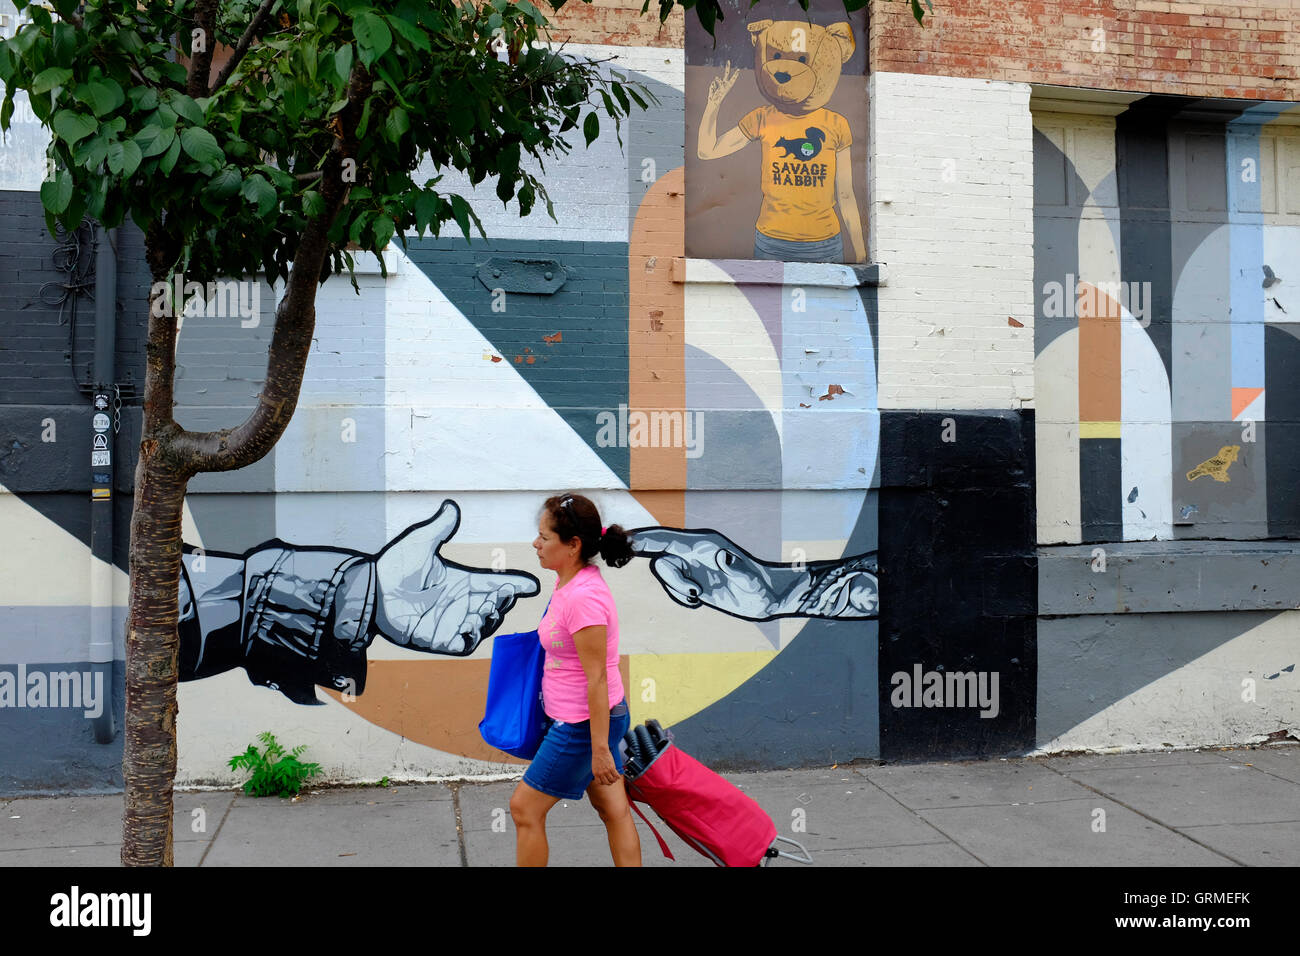 A woman walking by a mural along Christopher Columbus Drive in Historic Downtown,Jersey City,New Jersey,USA - Stock Image